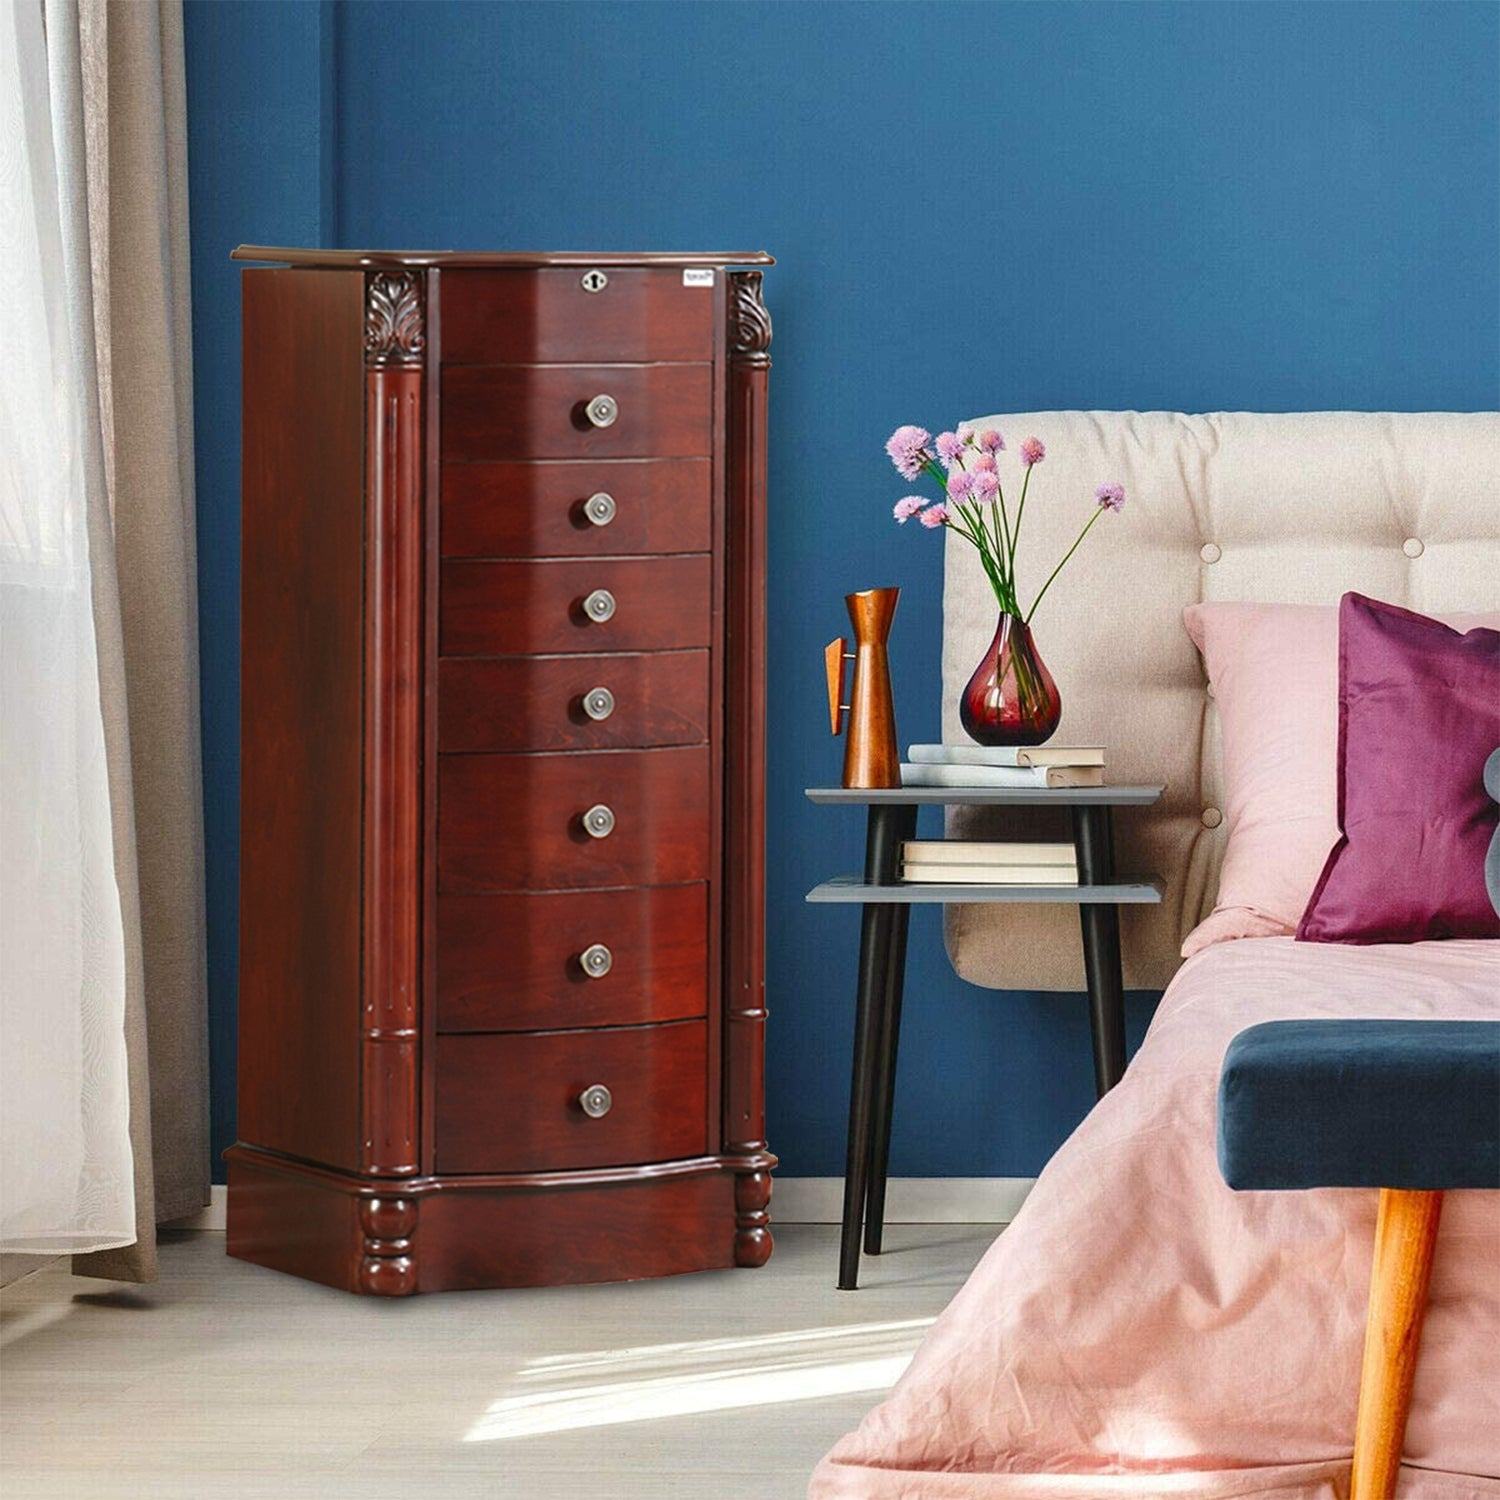 Image of: Shop Free Standing Jewelry Armoire With Mirror Cherry Overstock 31243640